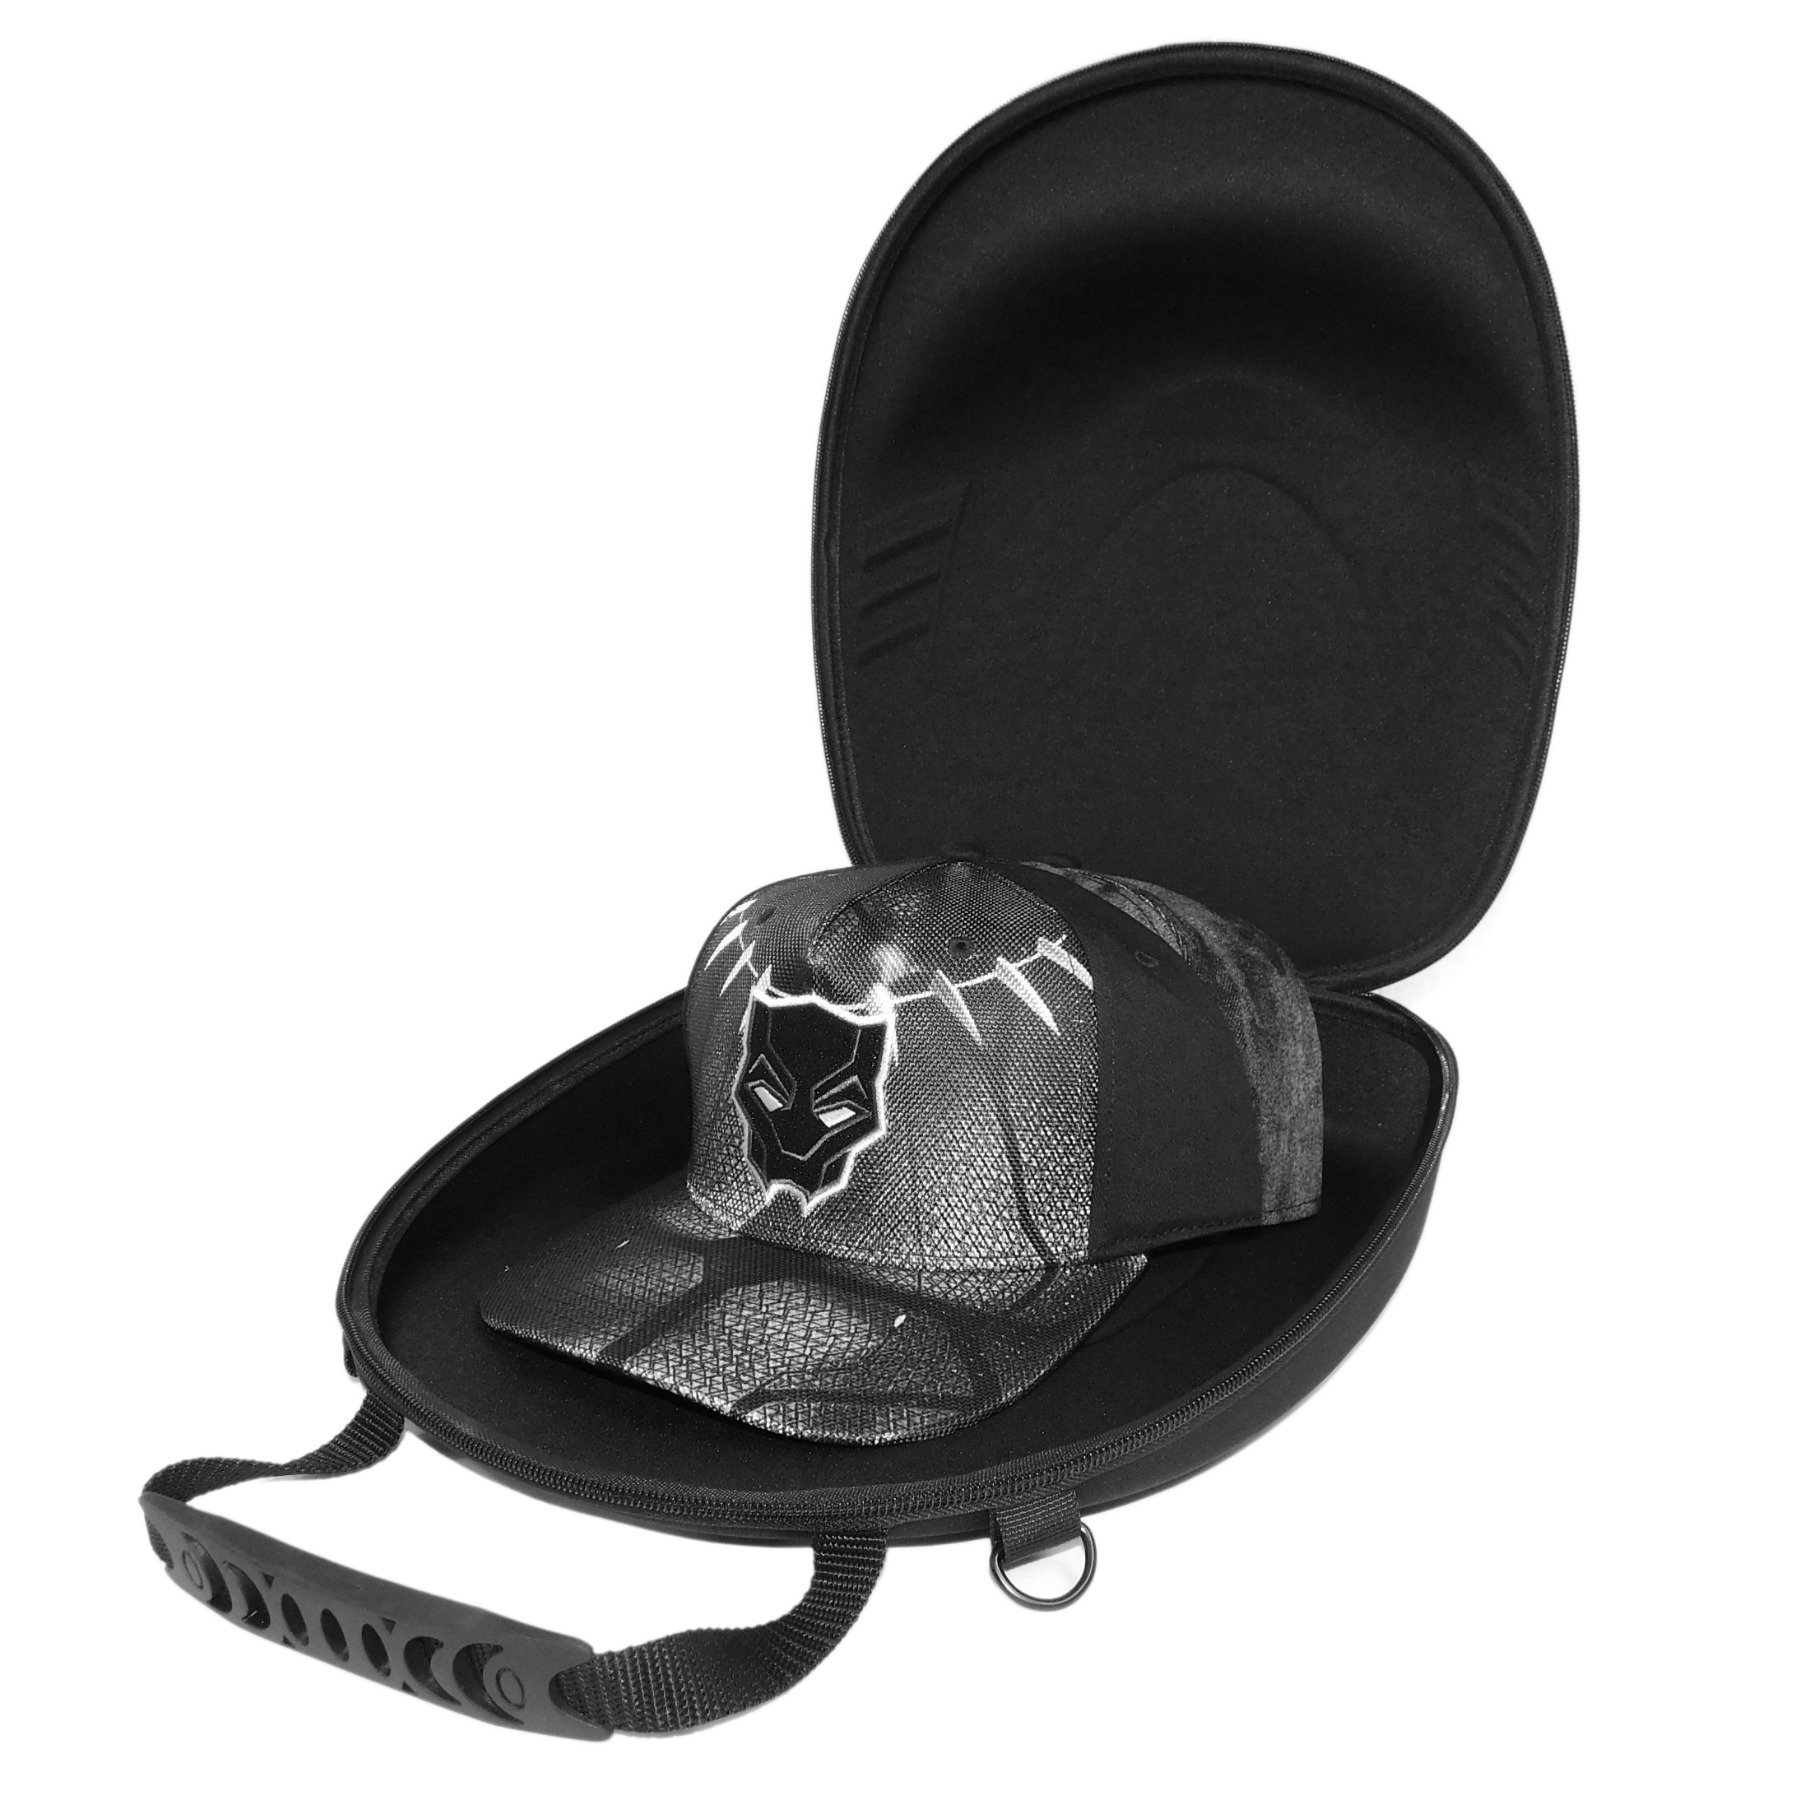 Baseball Cap Carrier Case 4-6 Hats Carry On Hat Bag by Atzi Hats